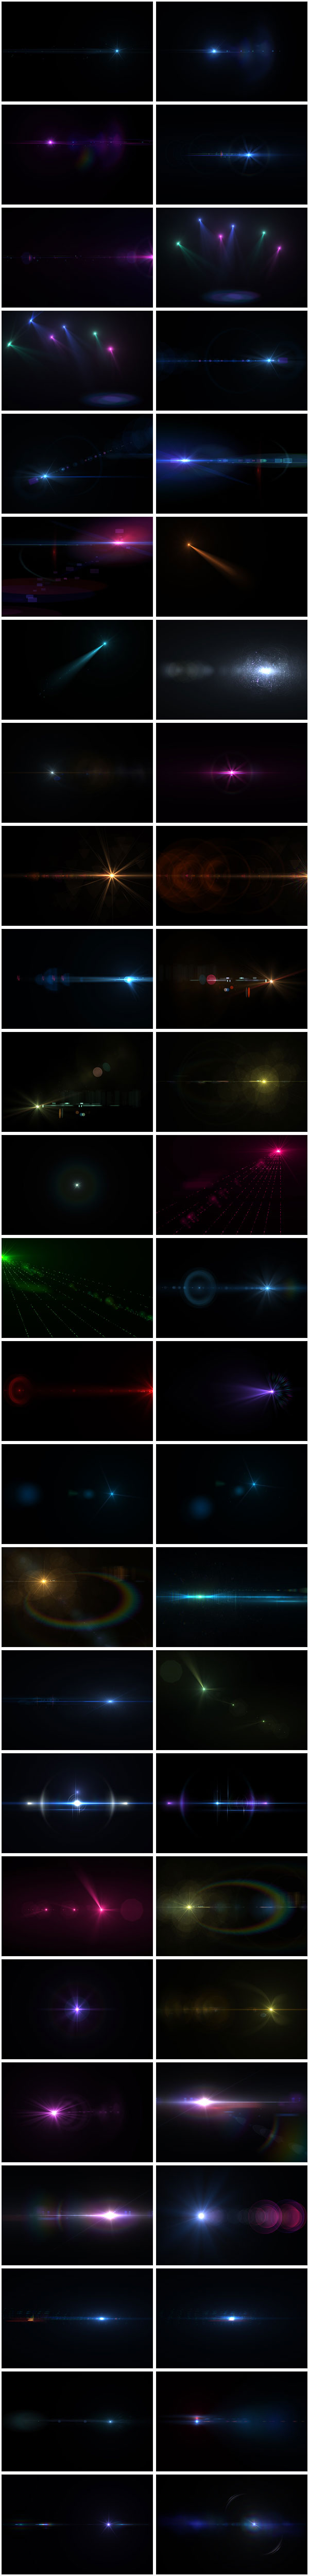 Lens Flares Preview